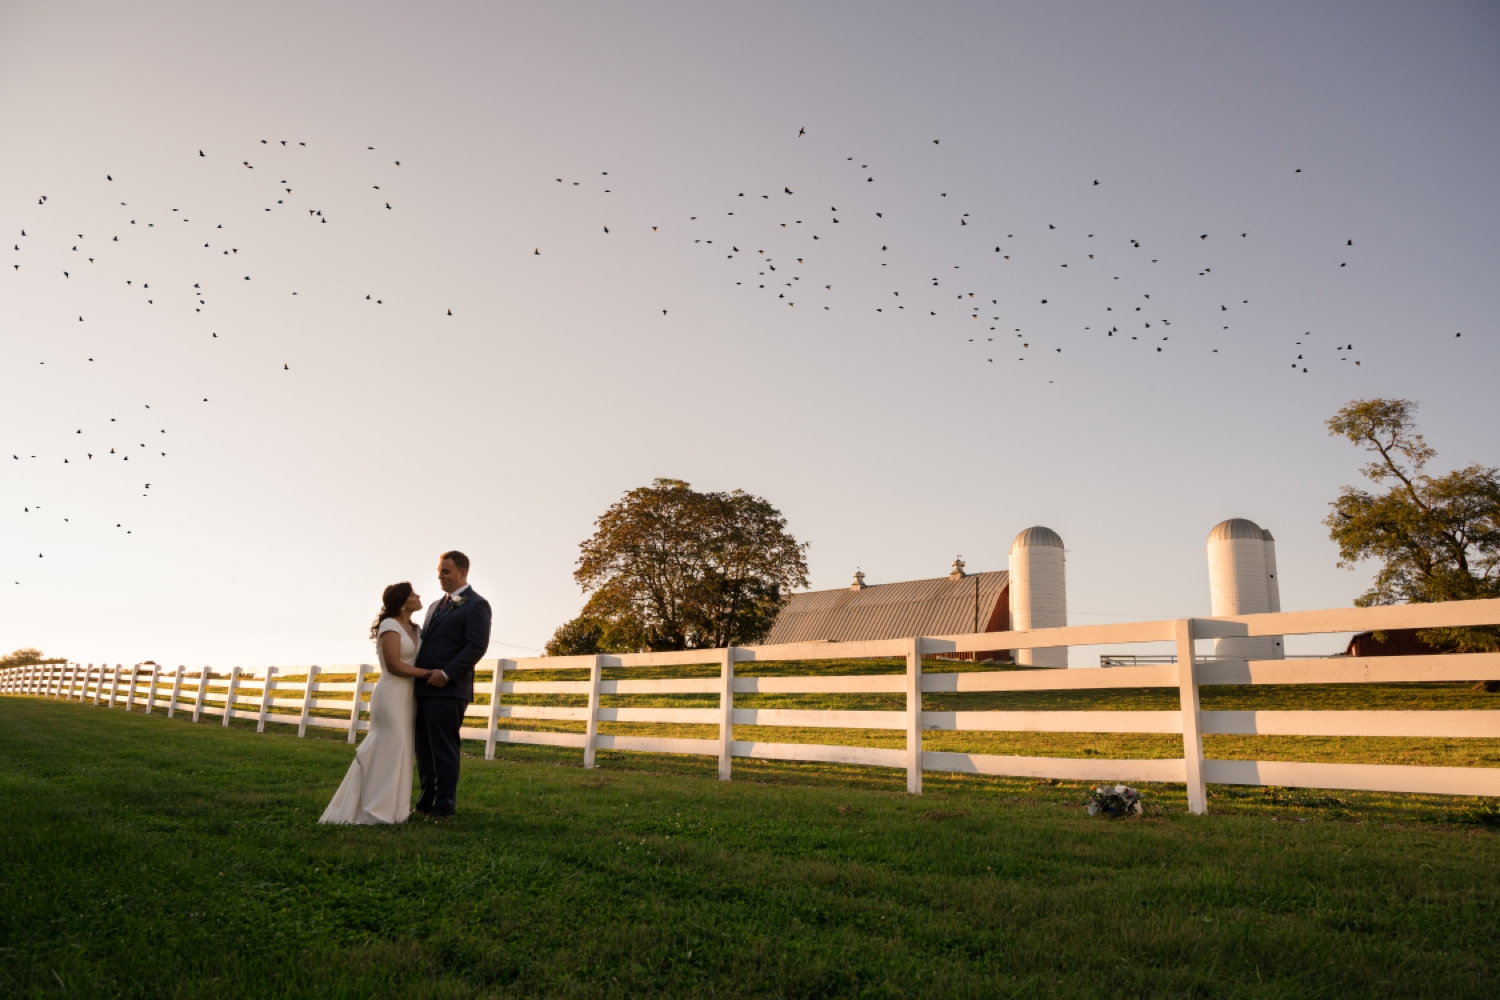 Tusculum Farm field and birds migration wedding photos